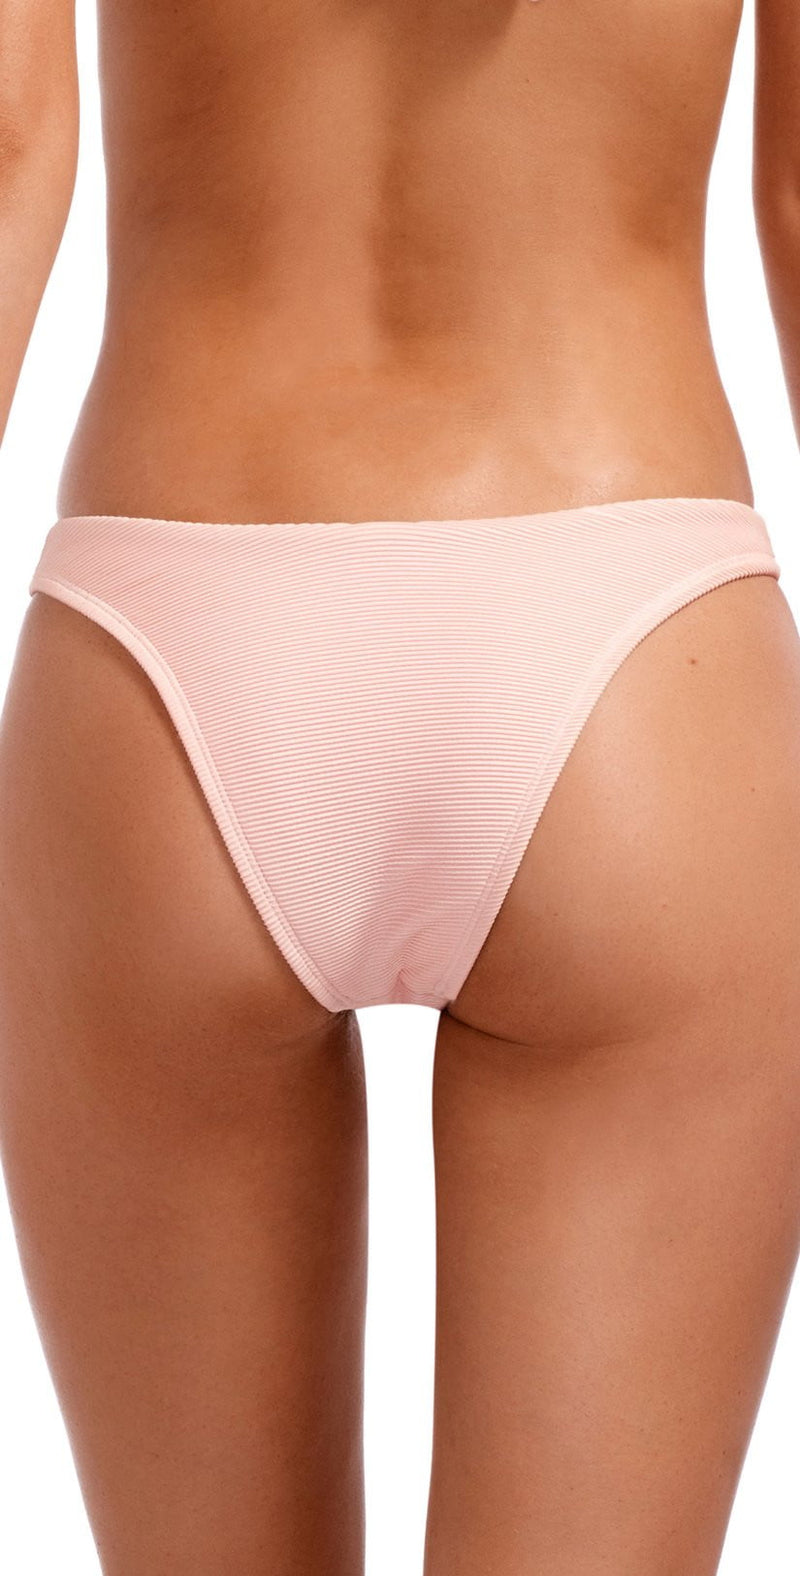 Vitamin A Perla Rose BioRib High Leg Bottom 812B-PBR: